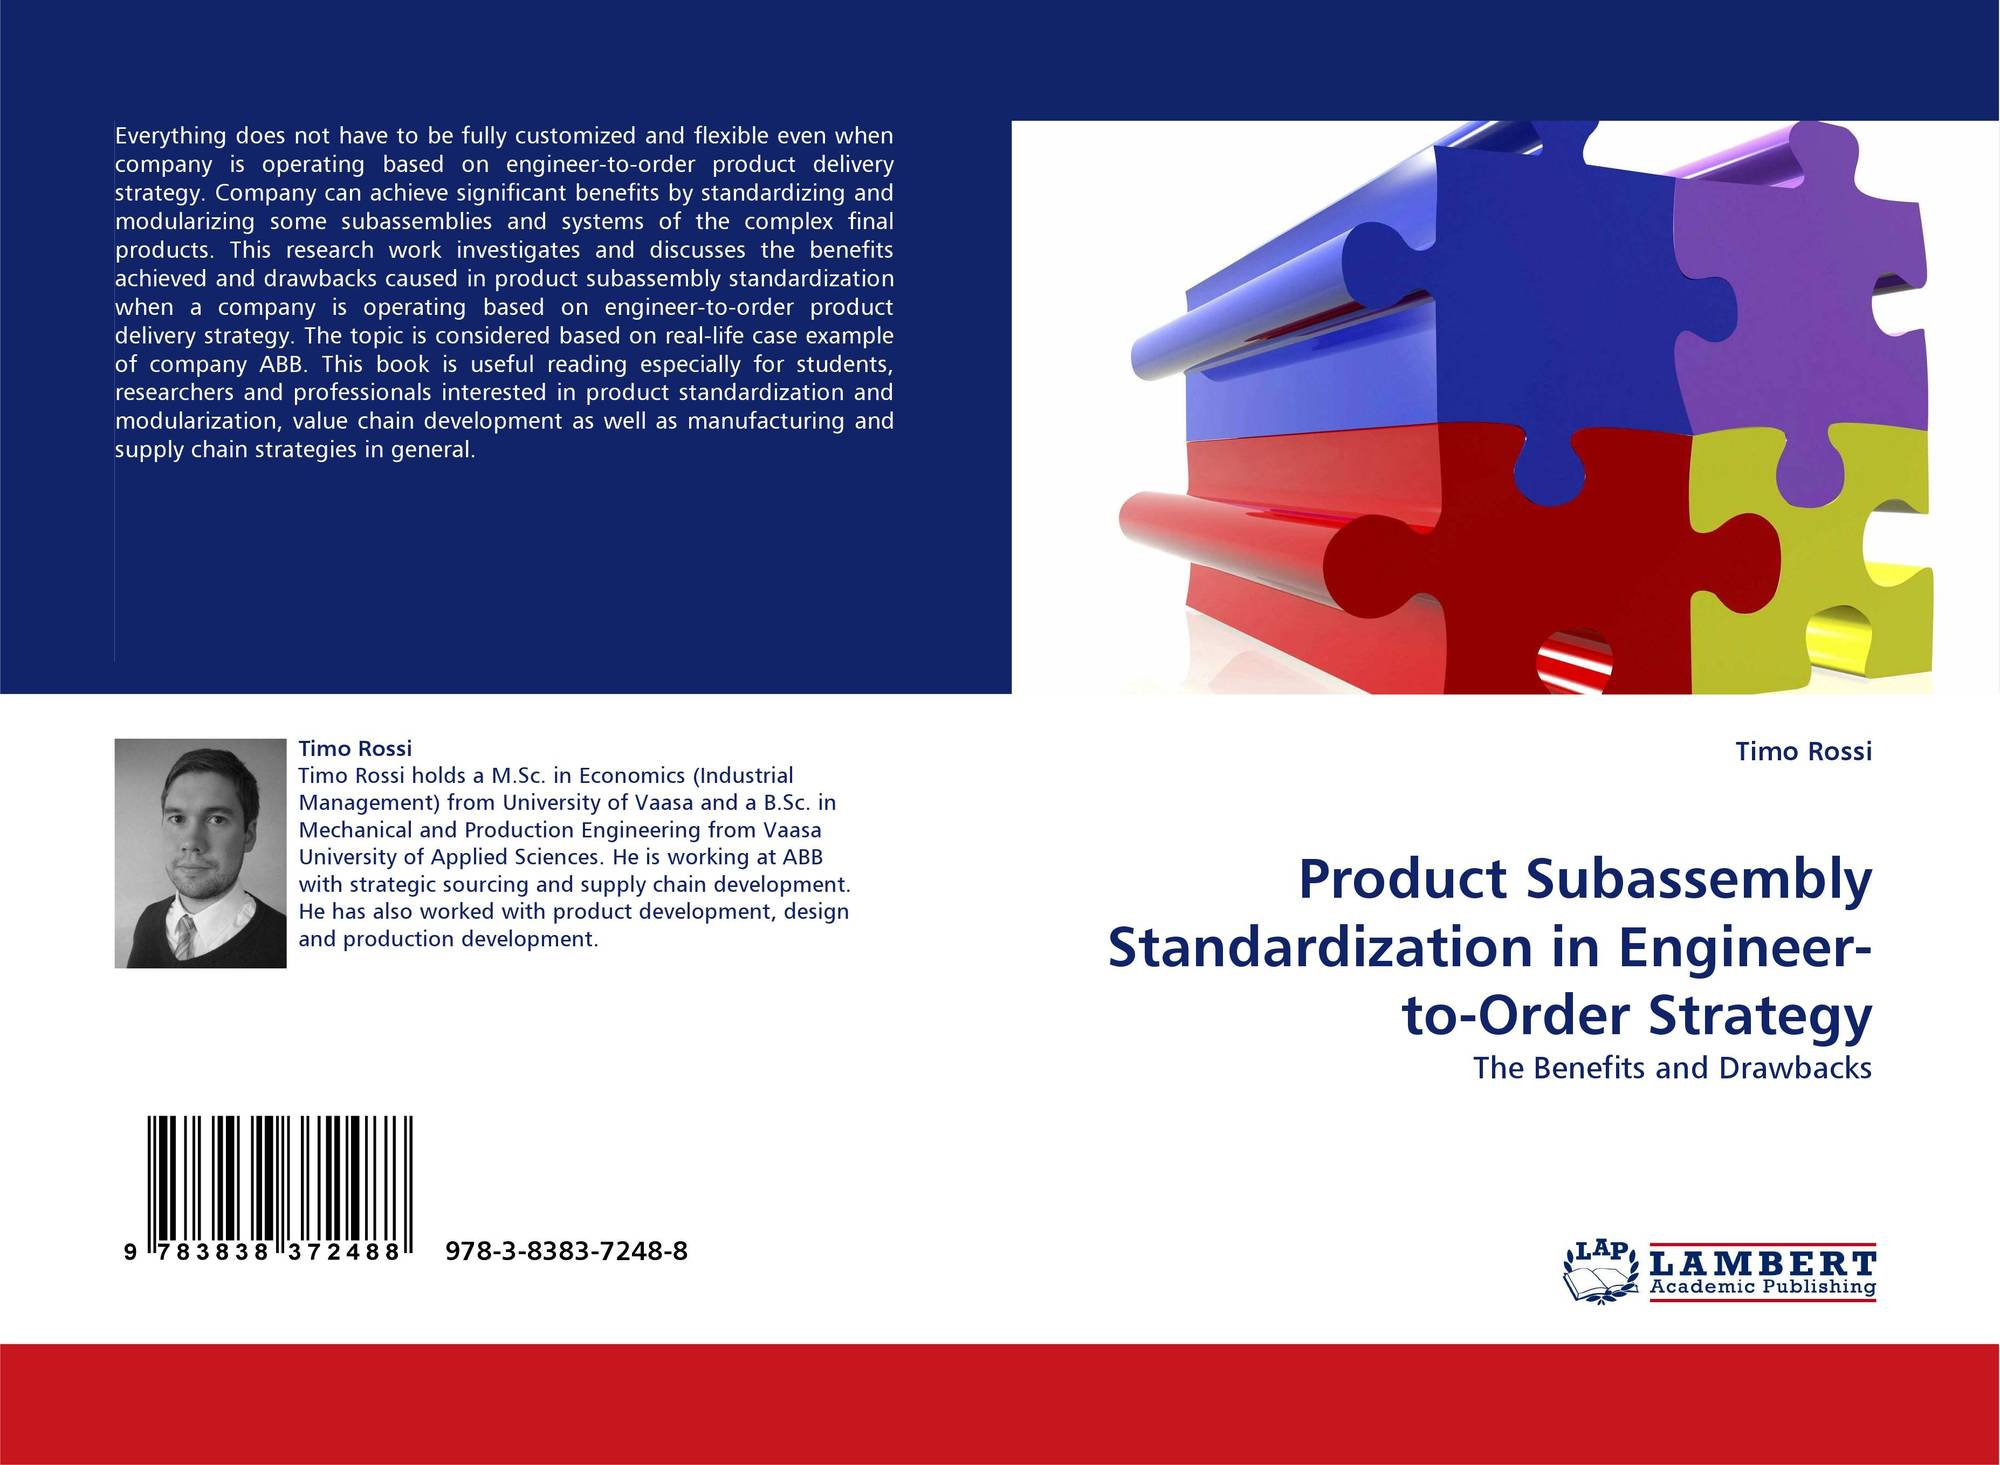 product standardization benefits